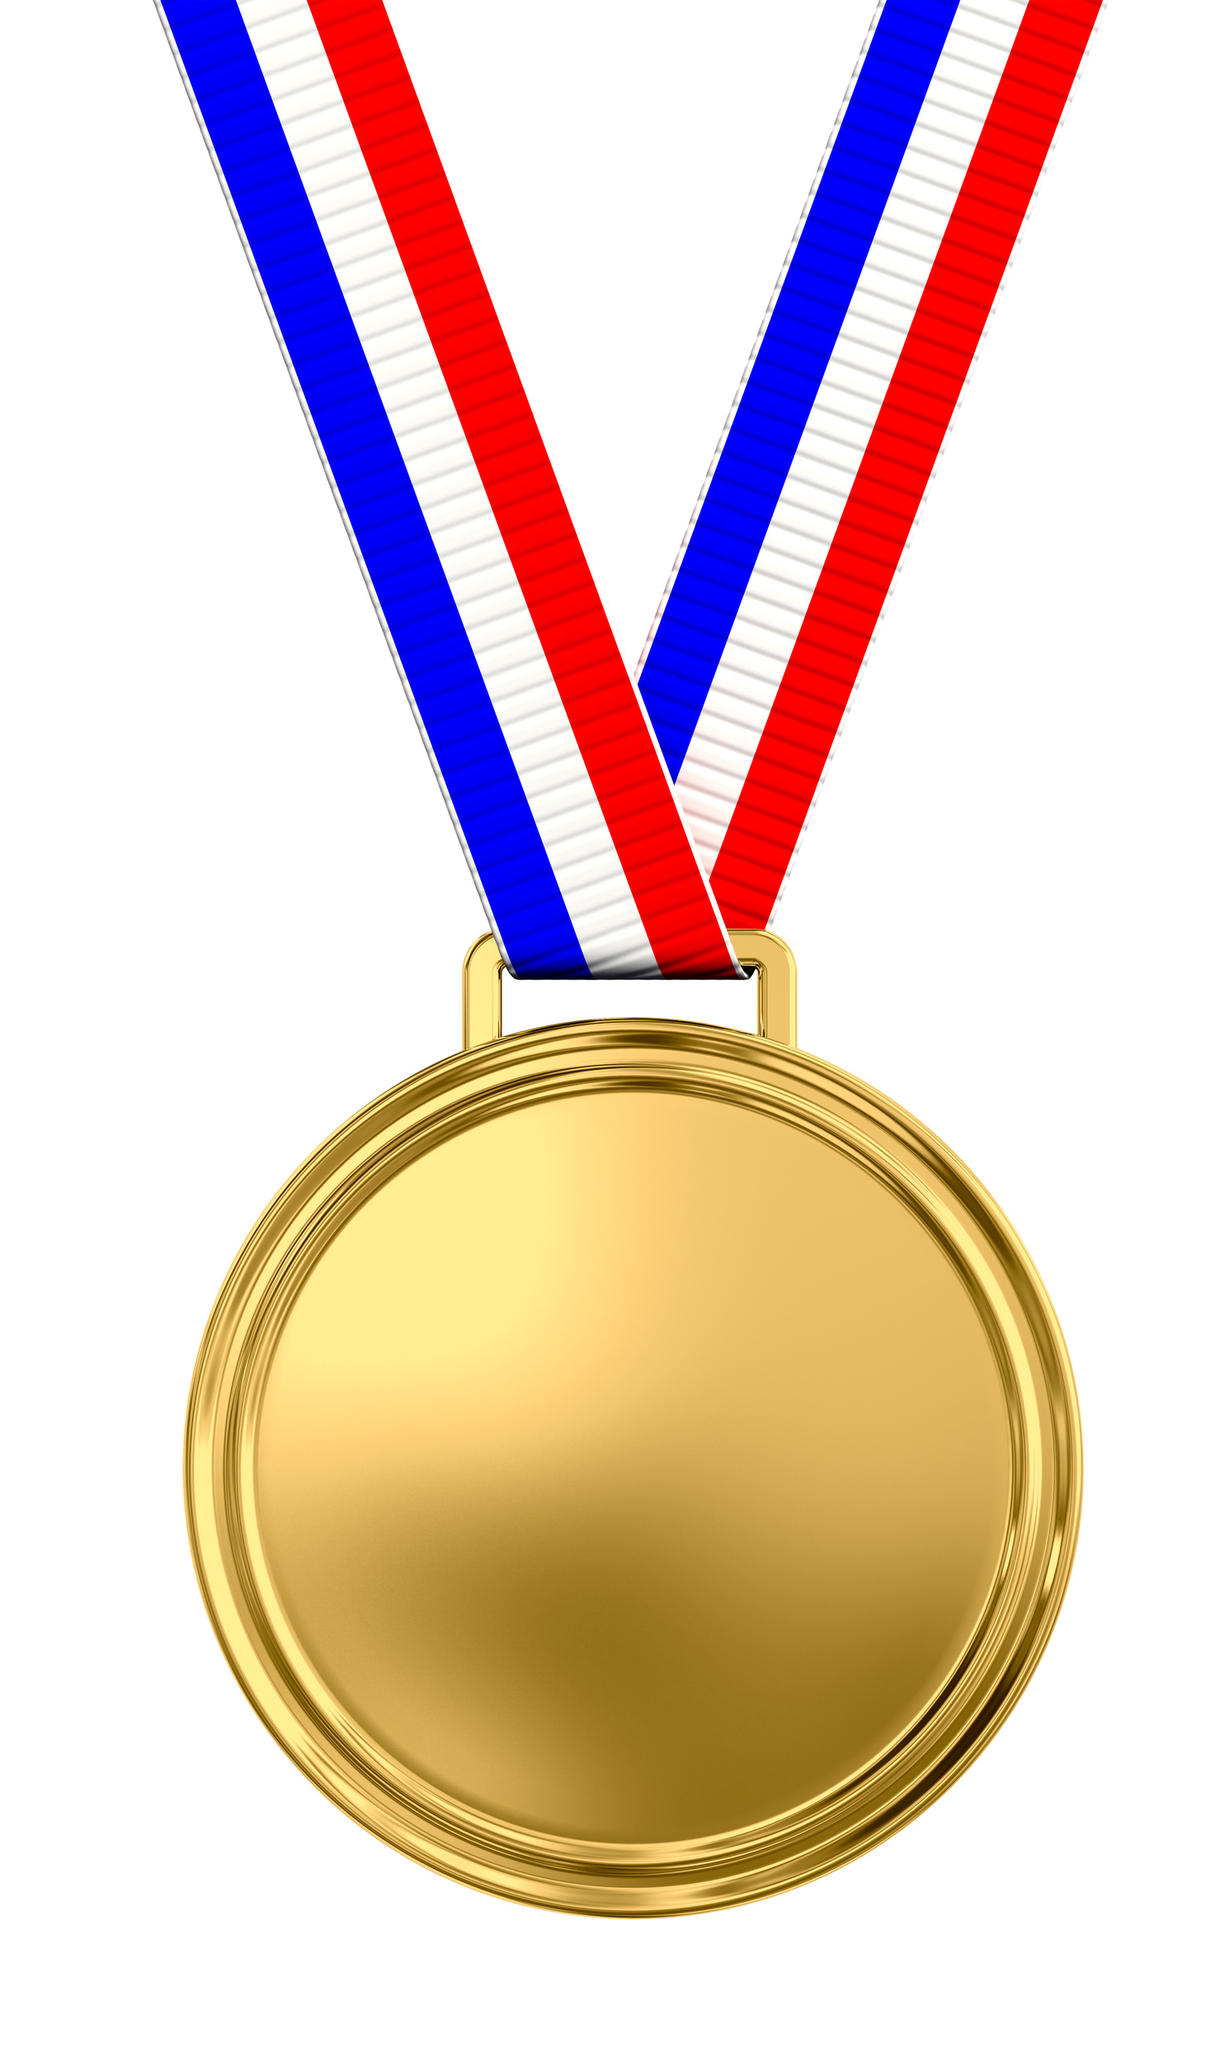 Medal Clipart - Clipart Kid